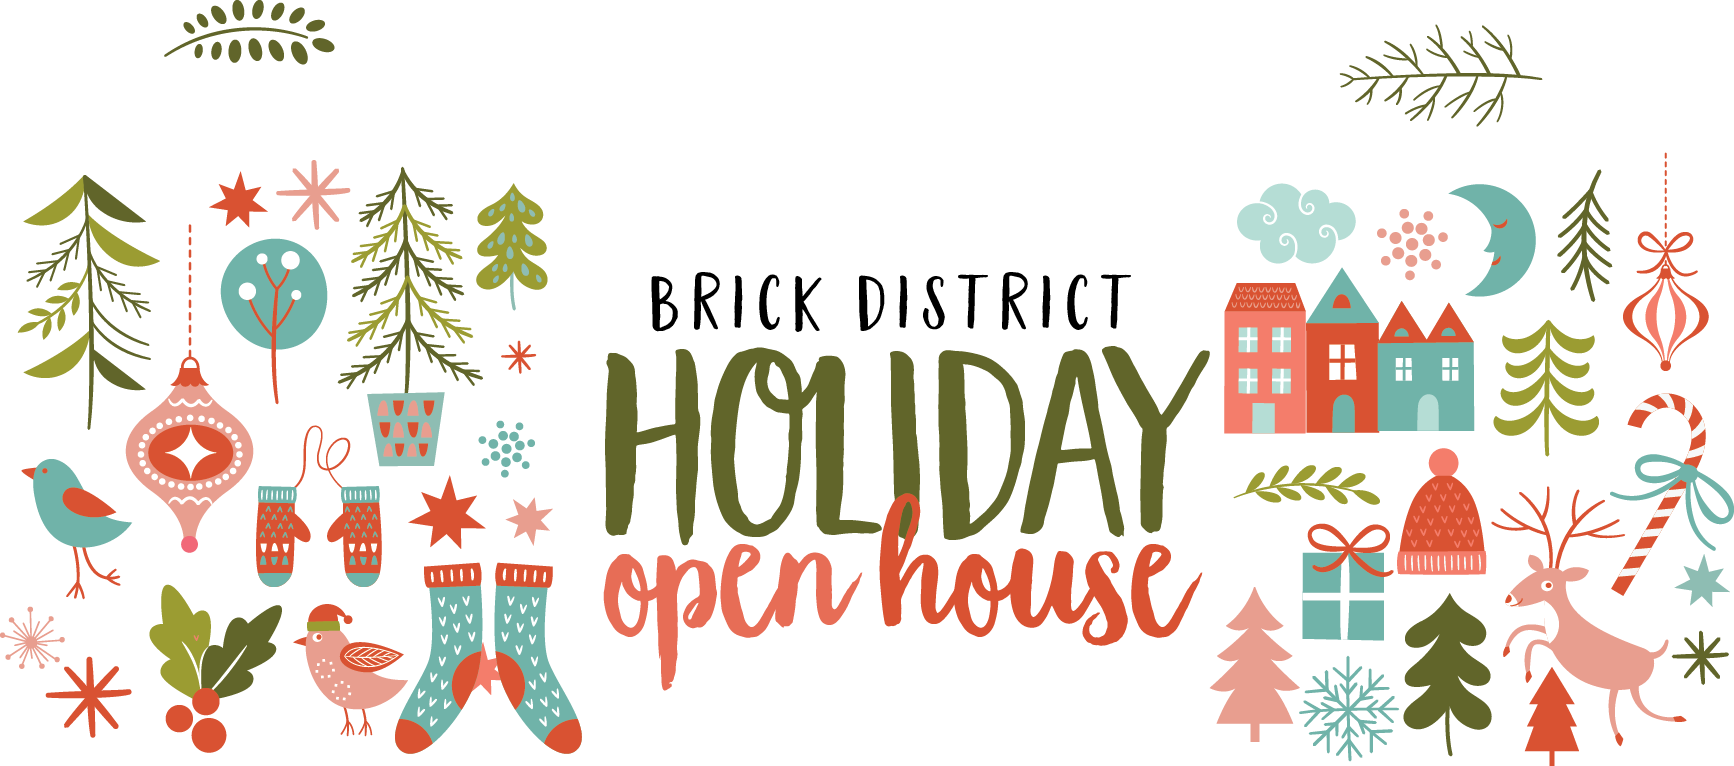 Open house free clipart clipart free download Holiday Open House clipart free download